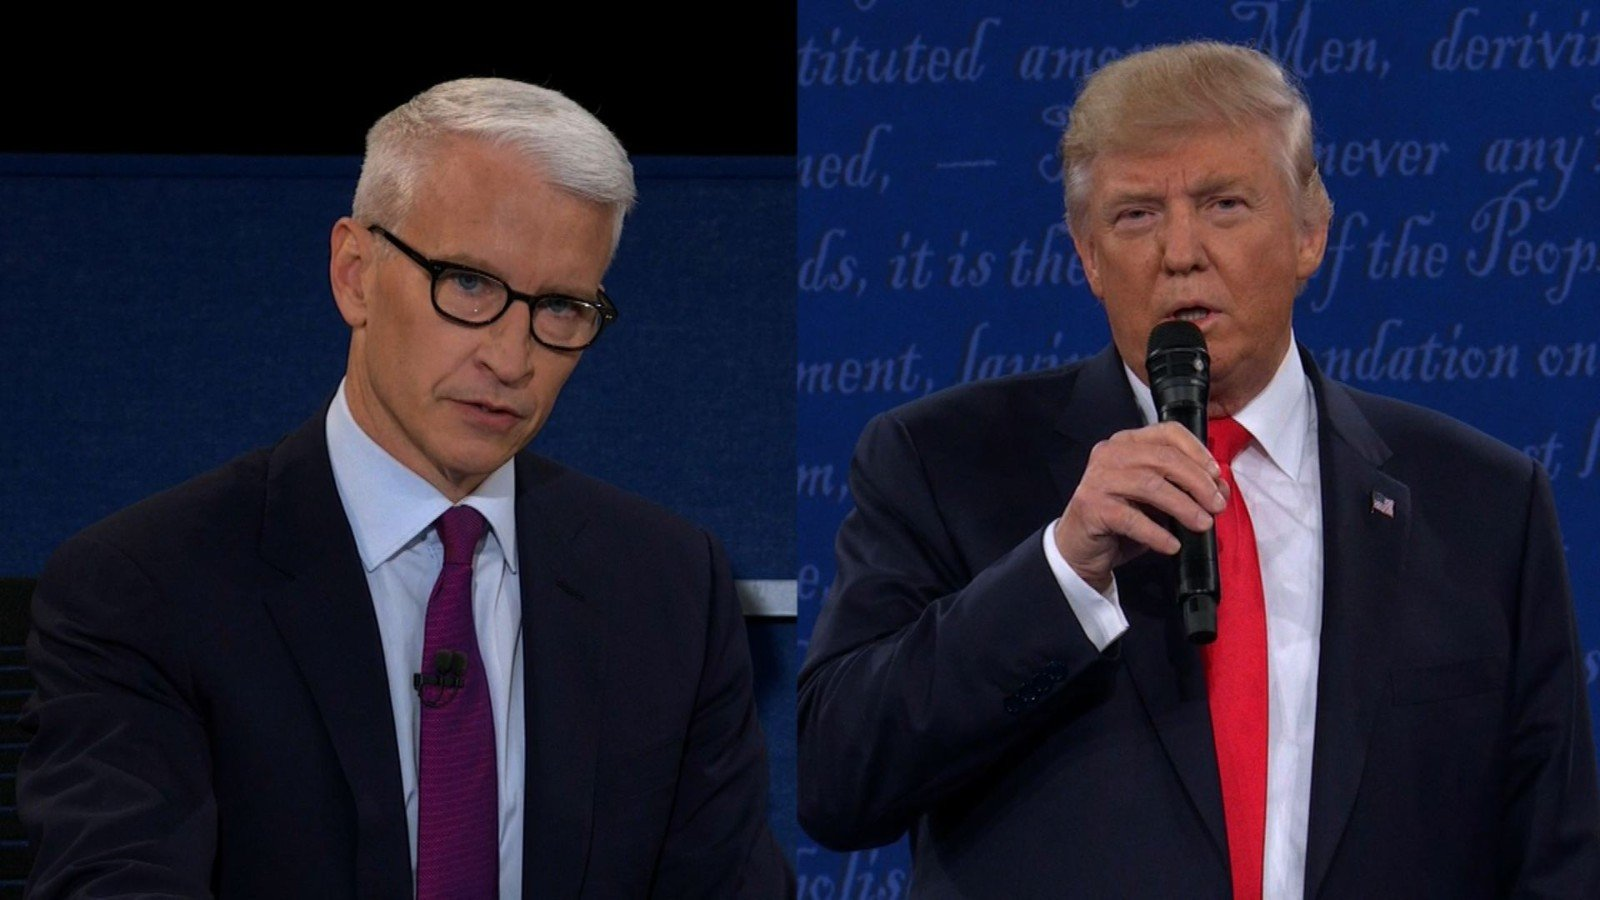 Anderson Cooper Compares Donald Trump To A Turtle 'On Its Back' Dying In The Sun And His Words Go Viral – Check Out The Memes!